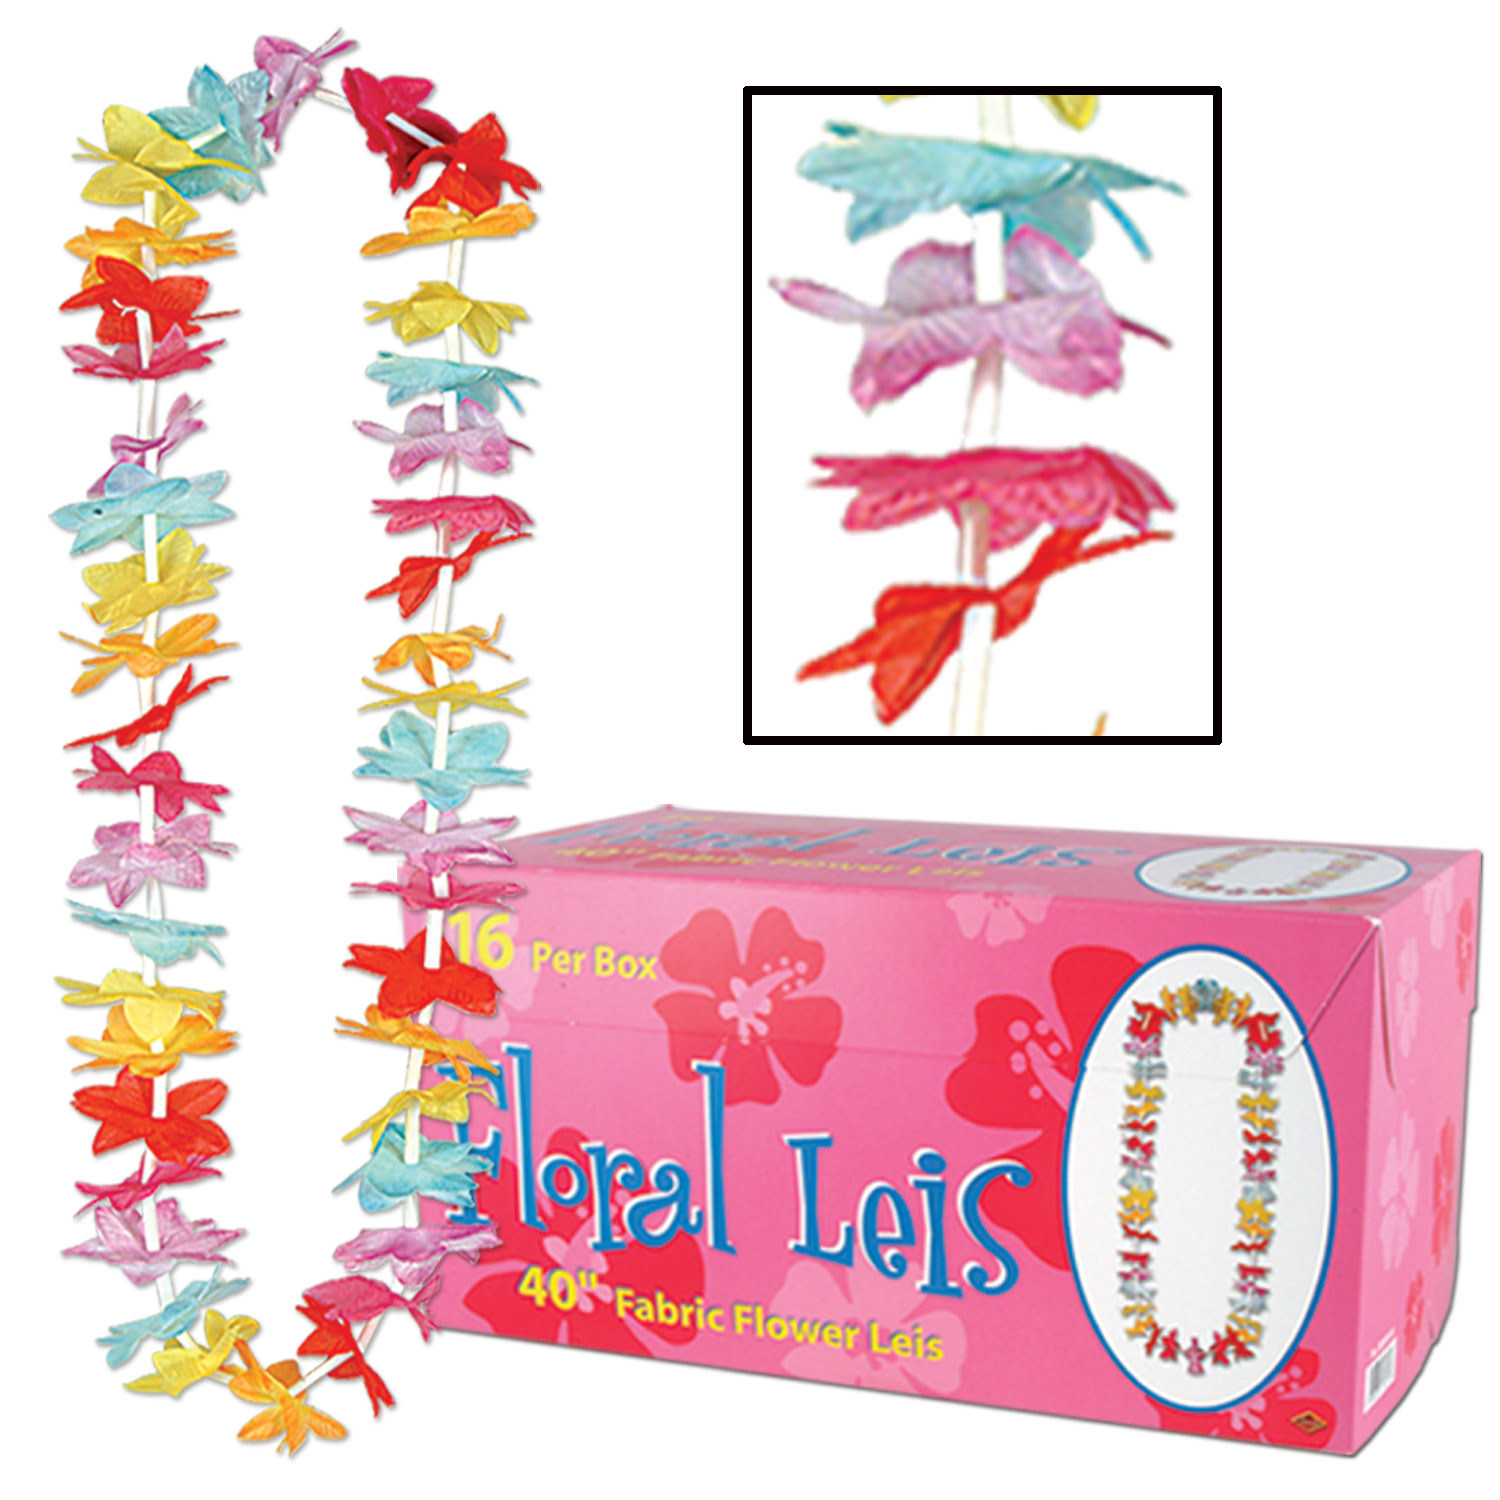 Floral Leis (Pack of 16) floral, leis, luau, island, jungle, theme, party, decoration, accessory